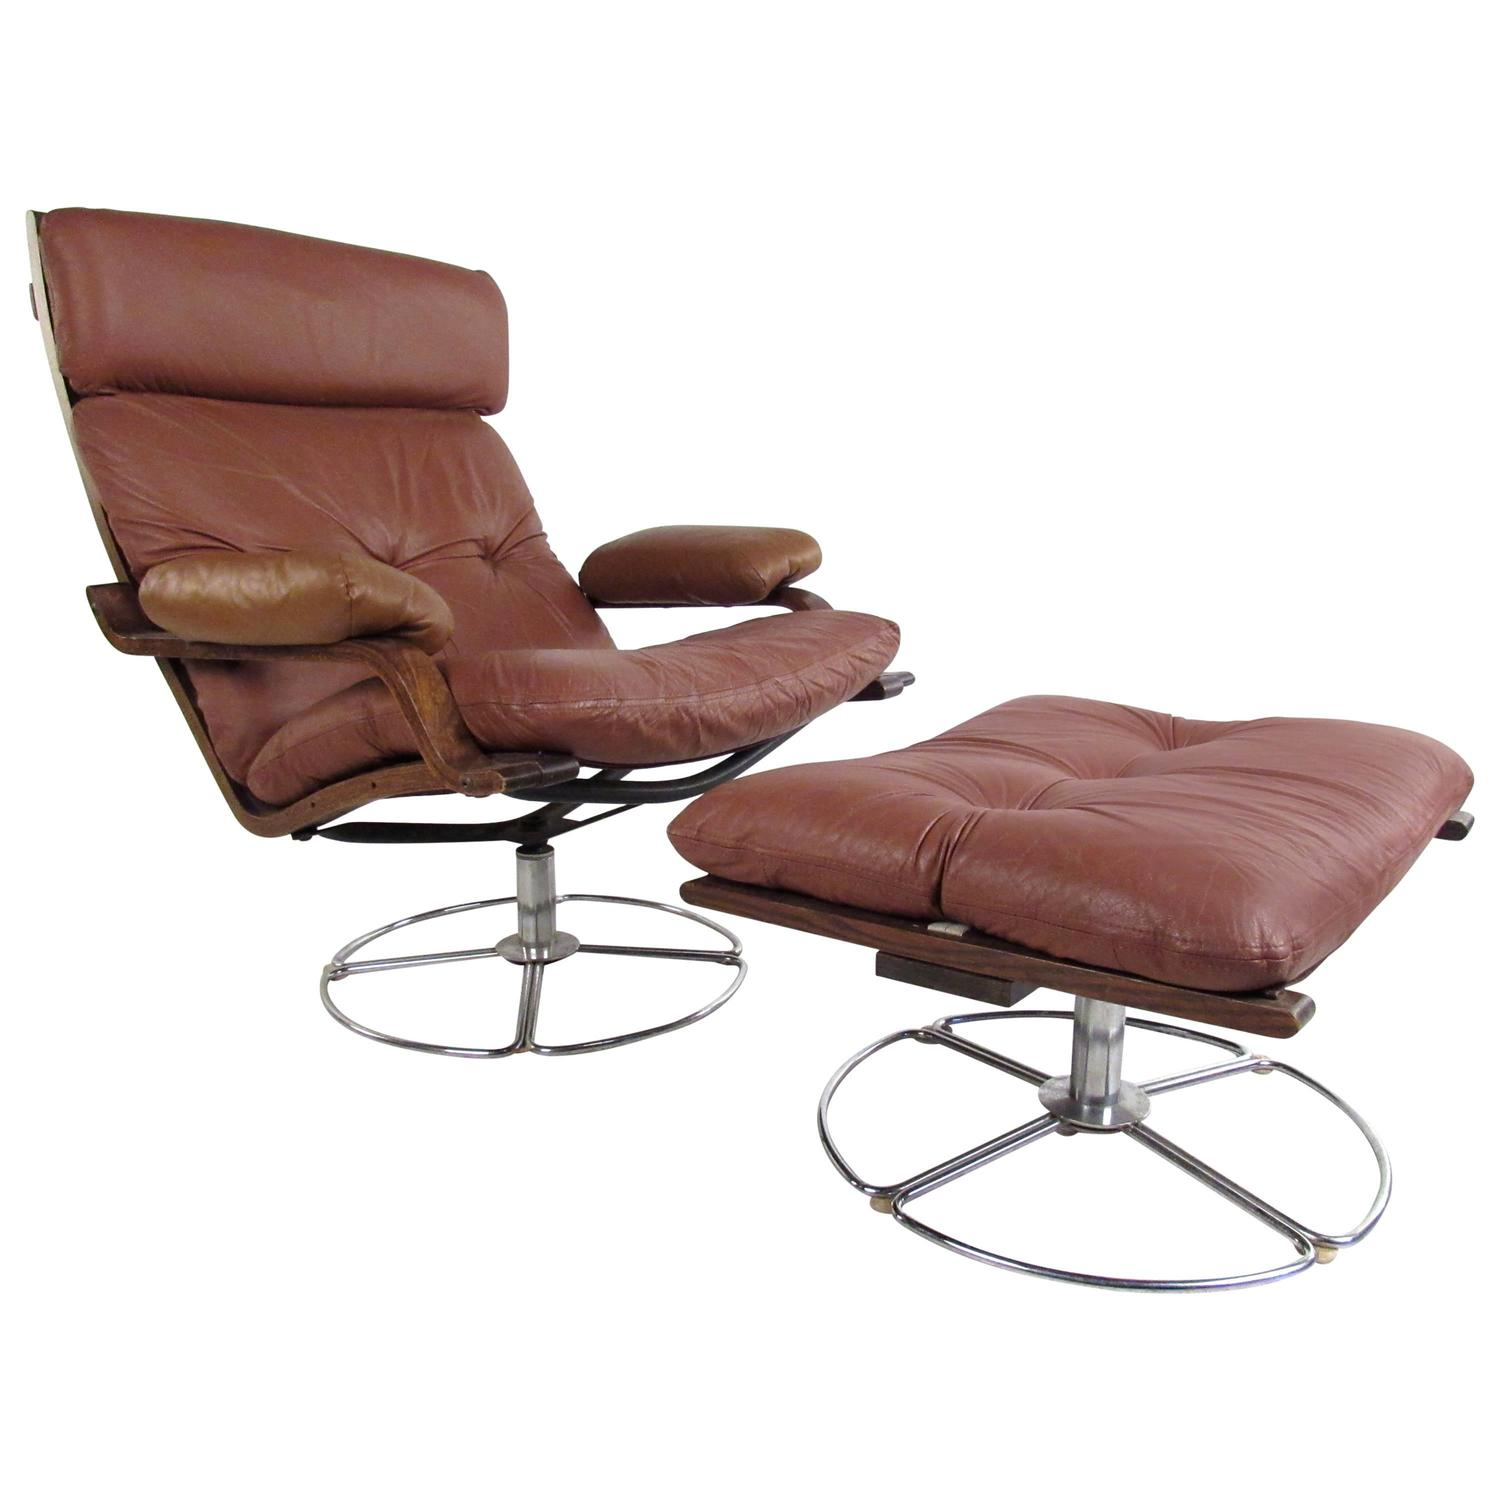 Vintage Leather Westnofa Style Swivel Lounge Chair with Ottoman at 1stdibs